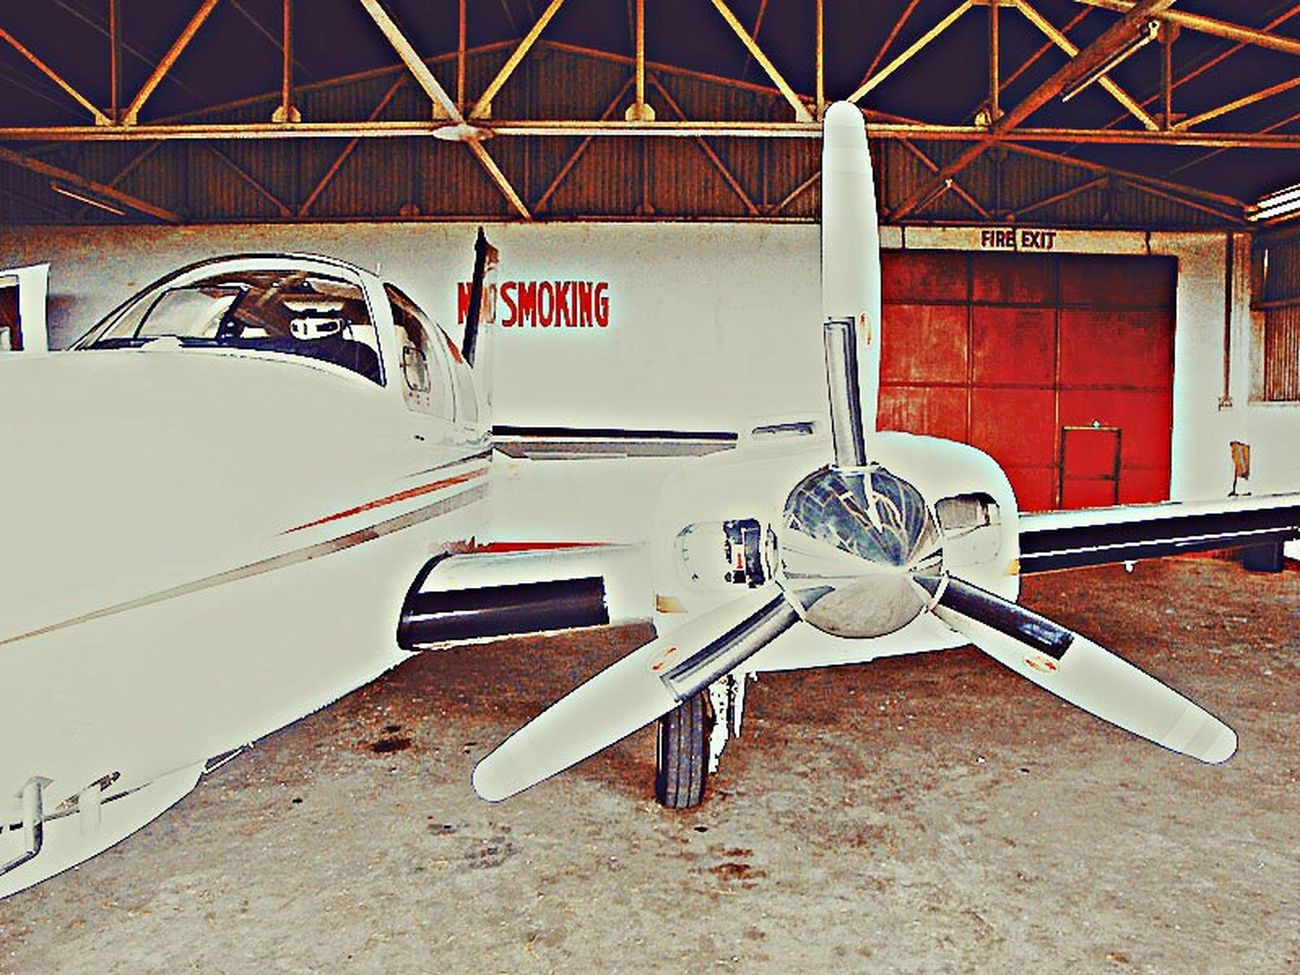 School! Been a while, at least I'm done! School Philippines Aviation Aircraft Mechanic